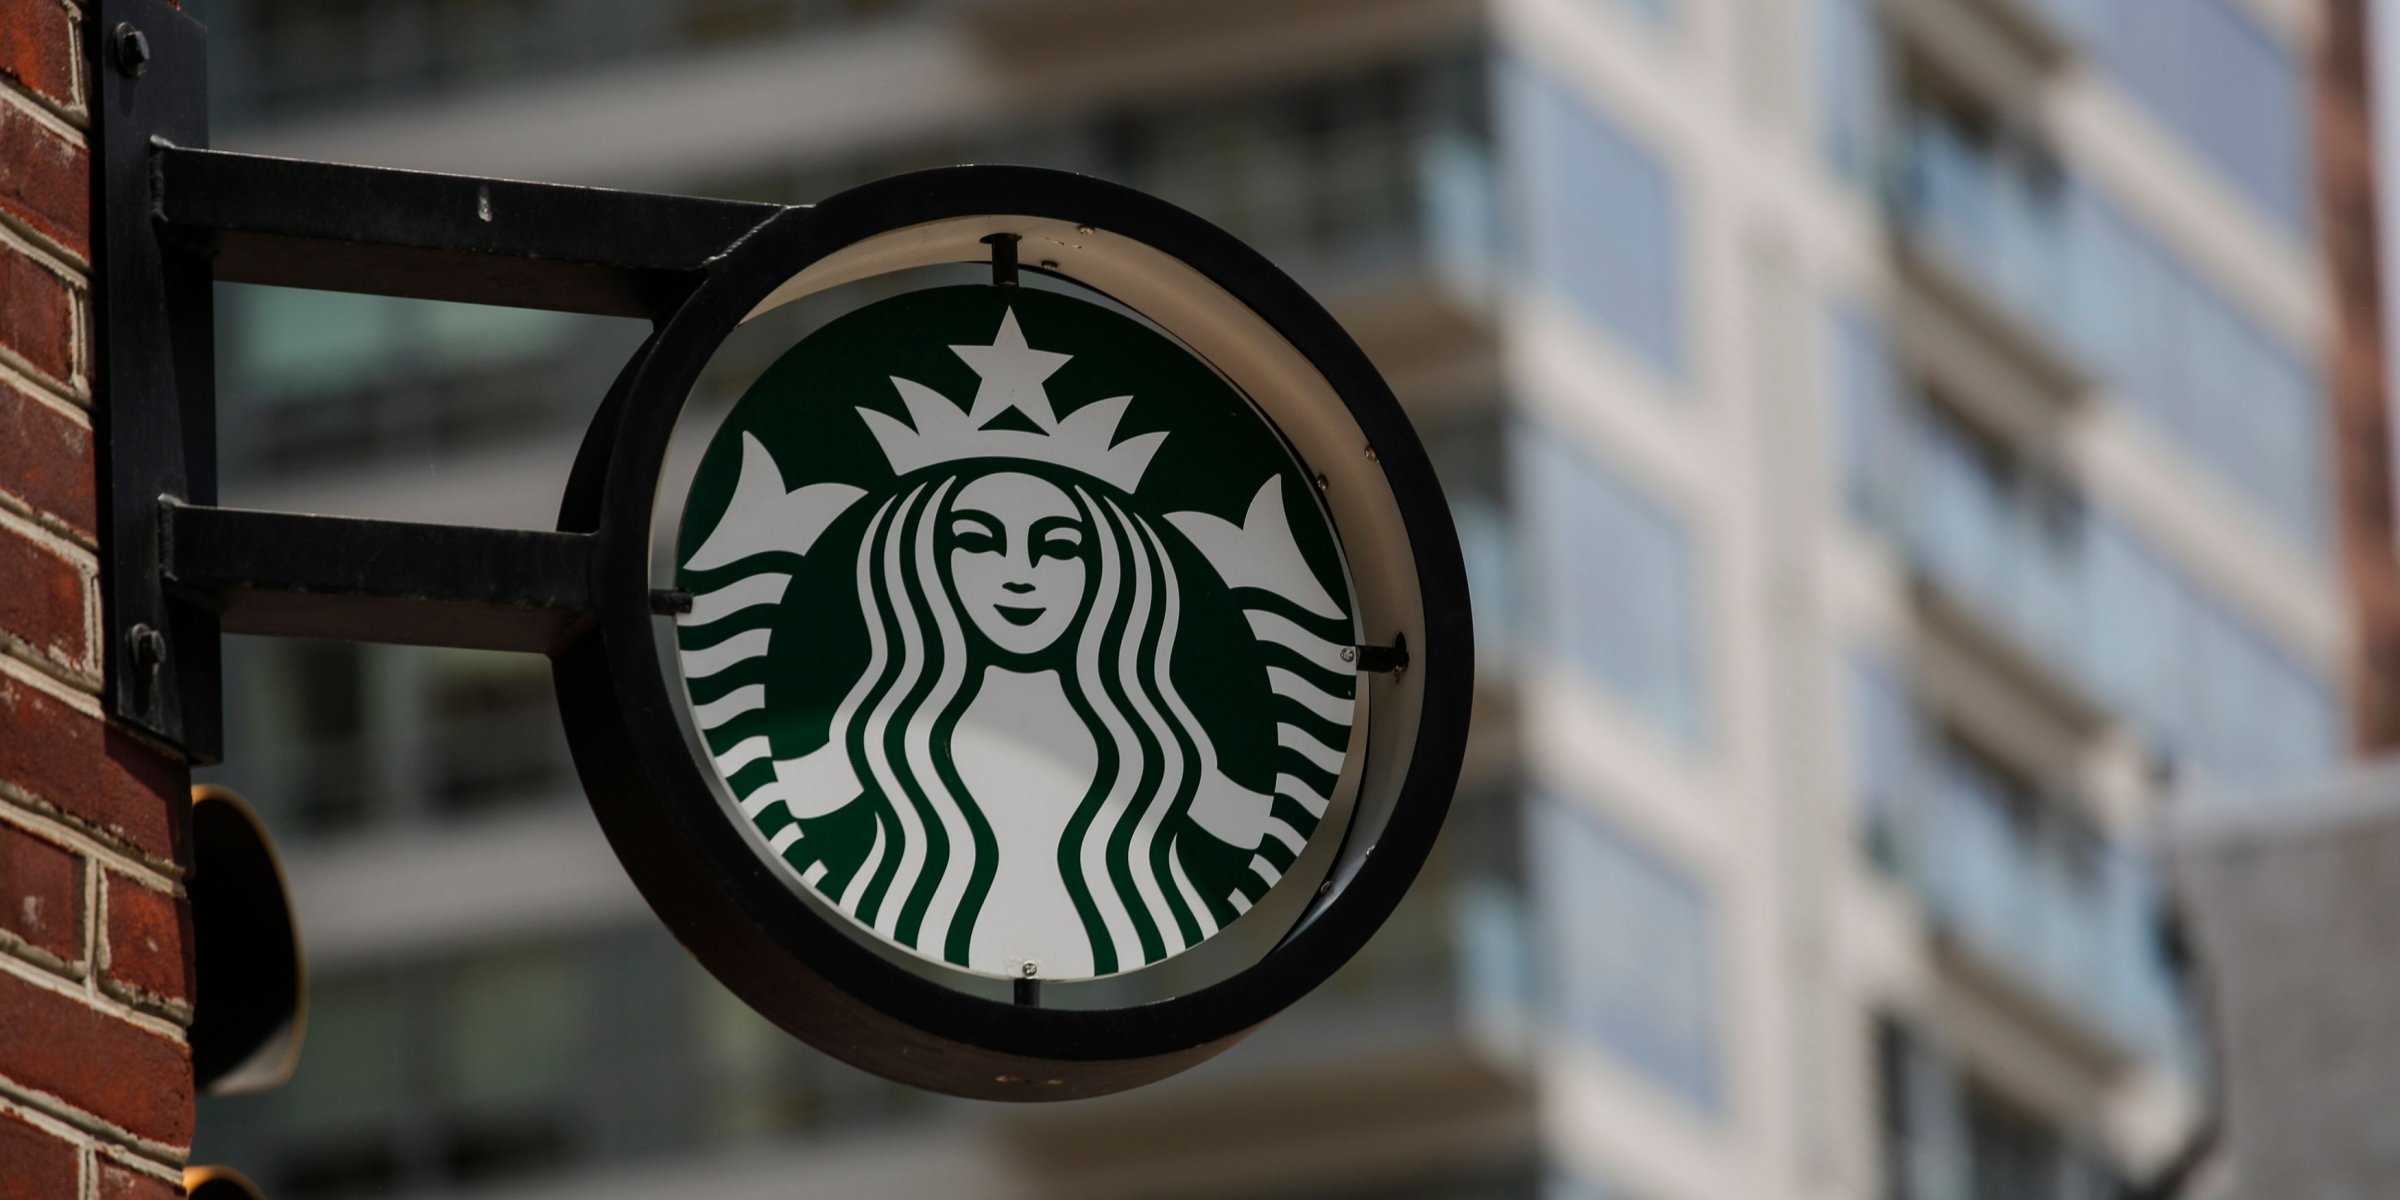 'isis' Written On Muslim Woman's Starbucks Cup In Us photo